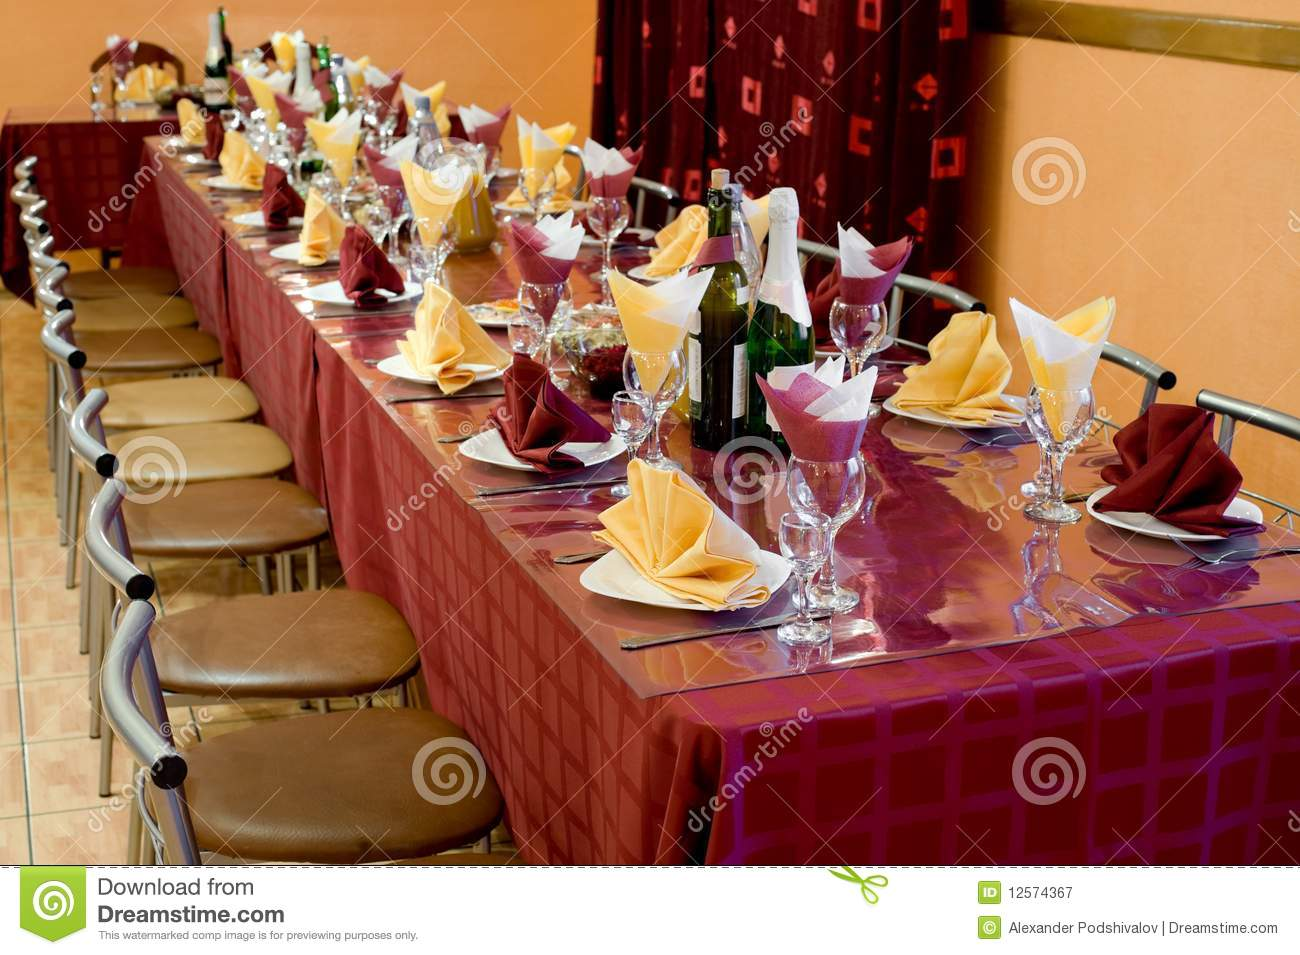 Banquet Bordeaux Table Royalty Free Stock Photography Image 12574367